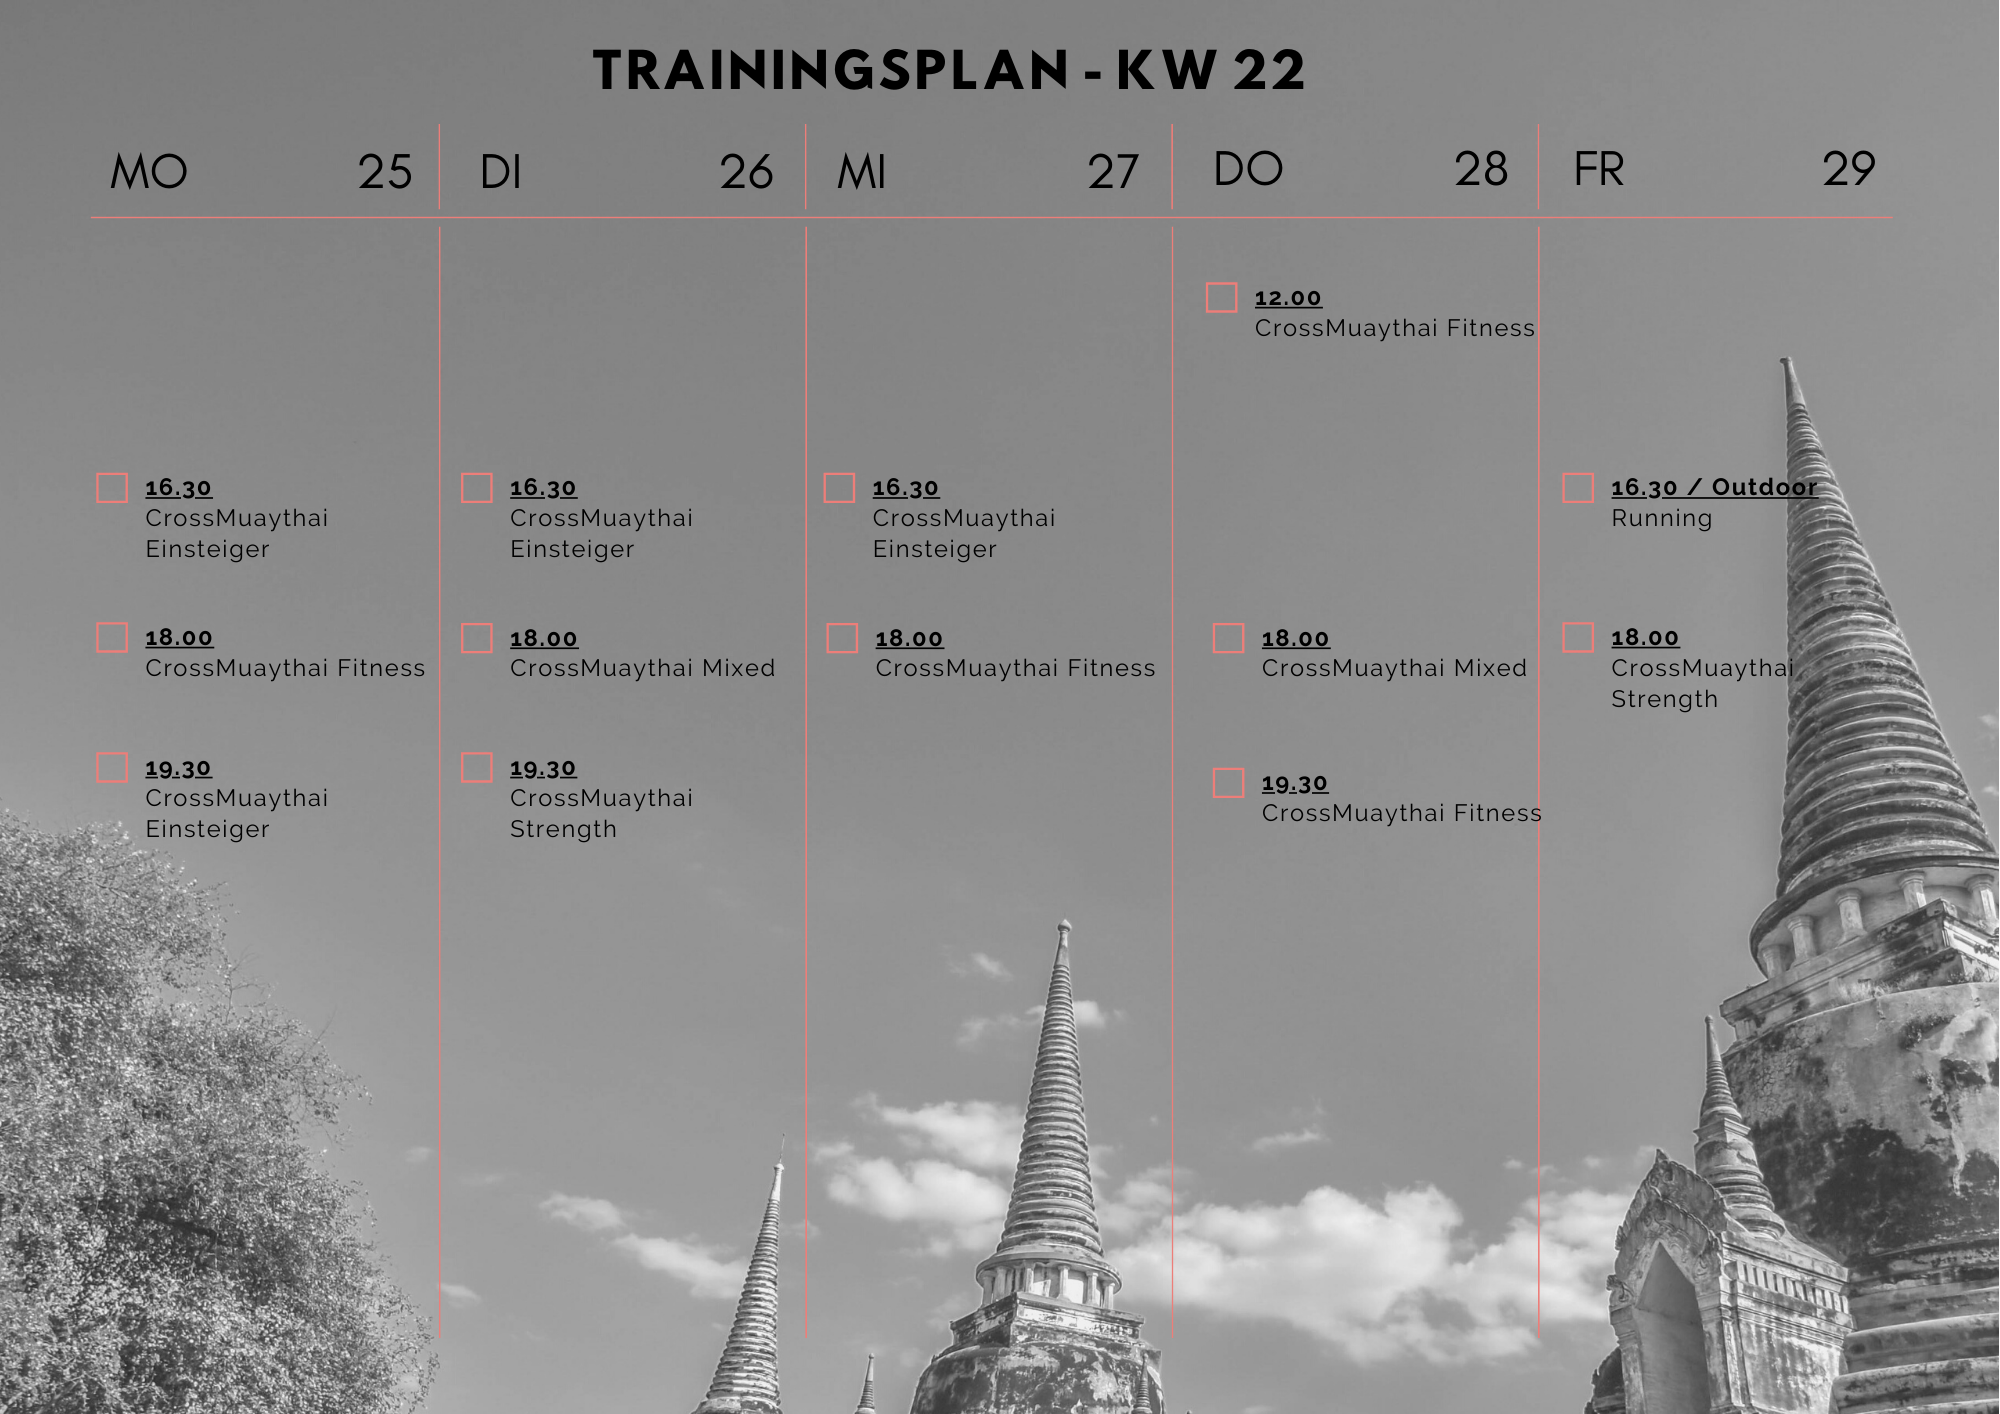 trainingsplan black dragon gym